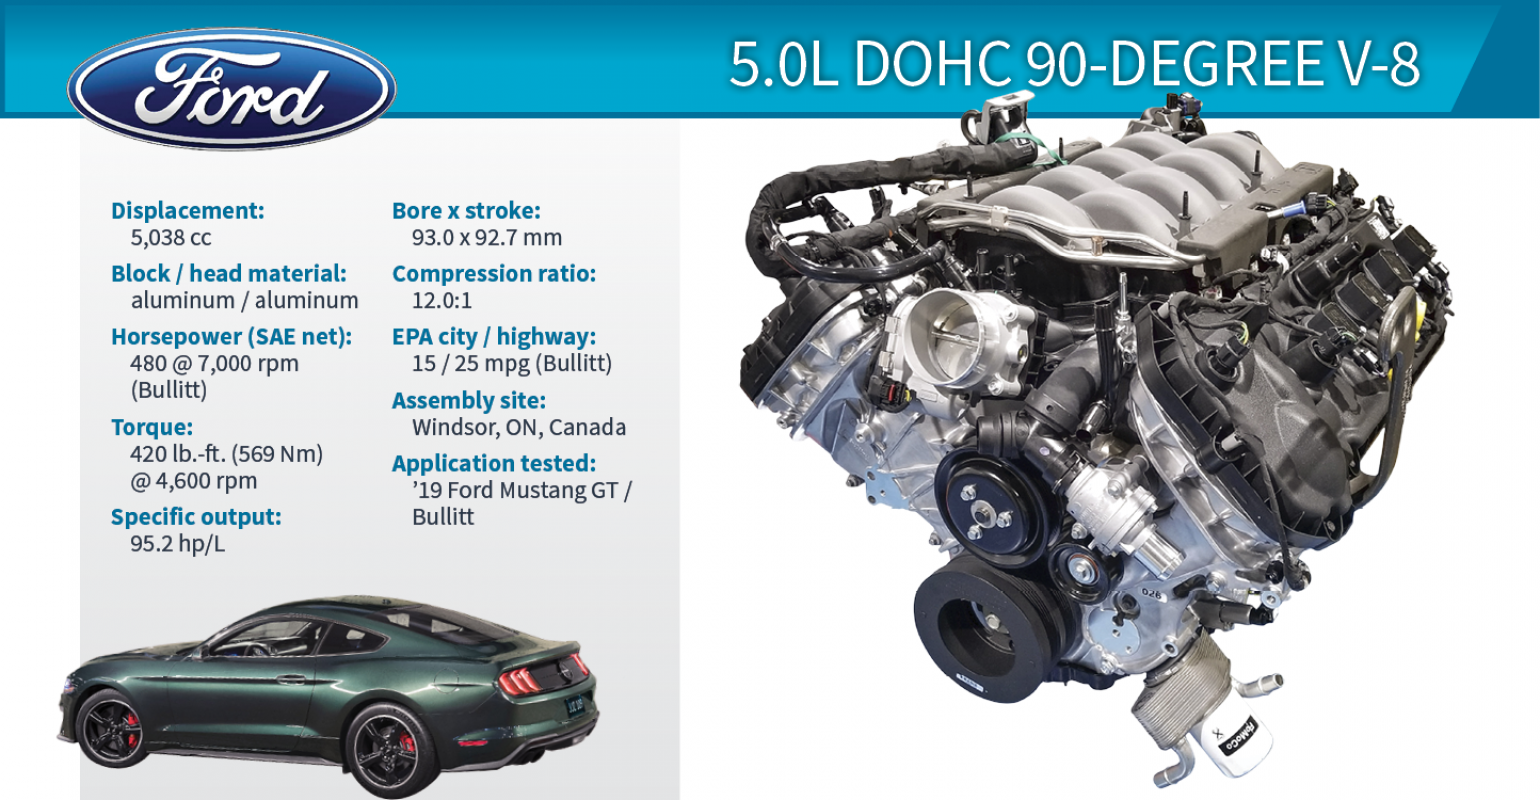 5.0L Dohc V-8 (Ford Mustang Gt)